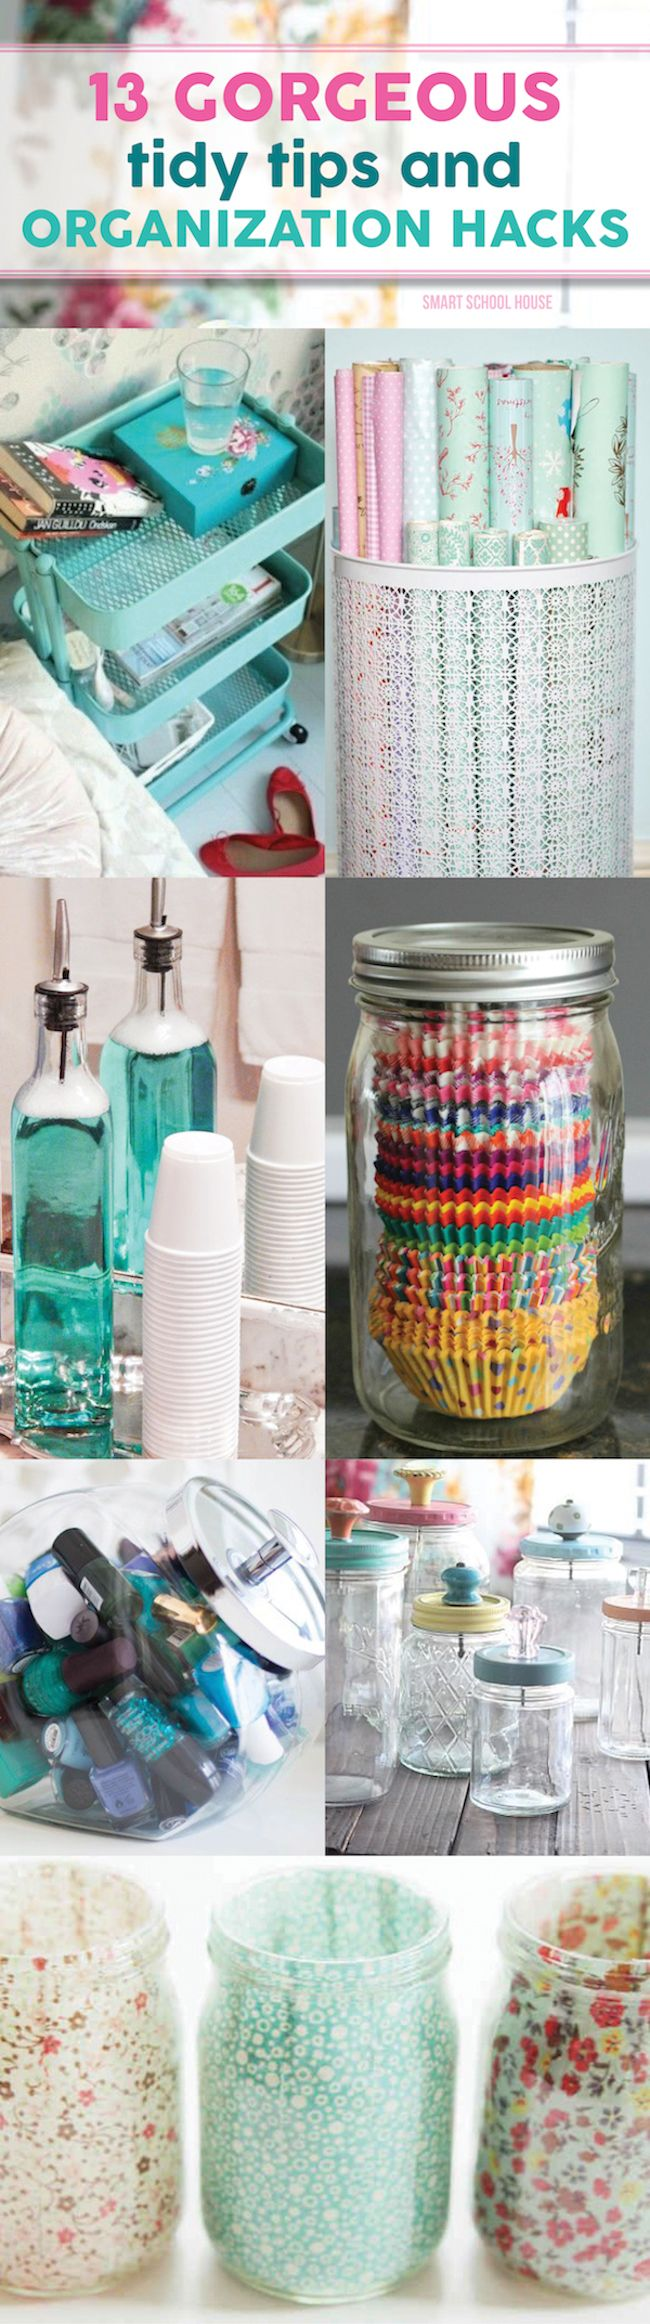 Gorgeous Tidy Tips and Organization Hacks. DIY home and house life hacks and tip...